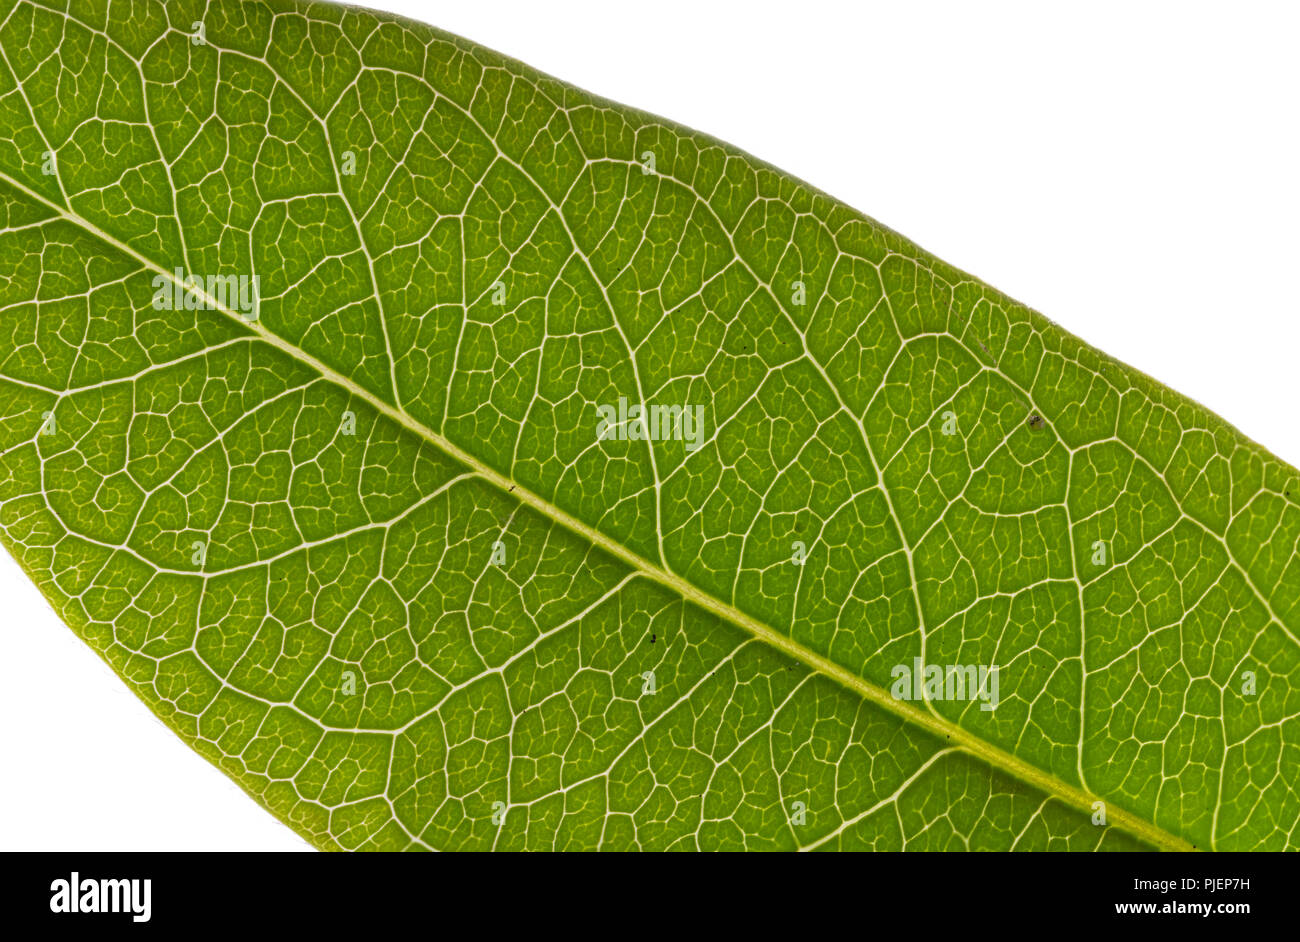 Macro image of a green leaf in Summer against a white background. Stock Photo